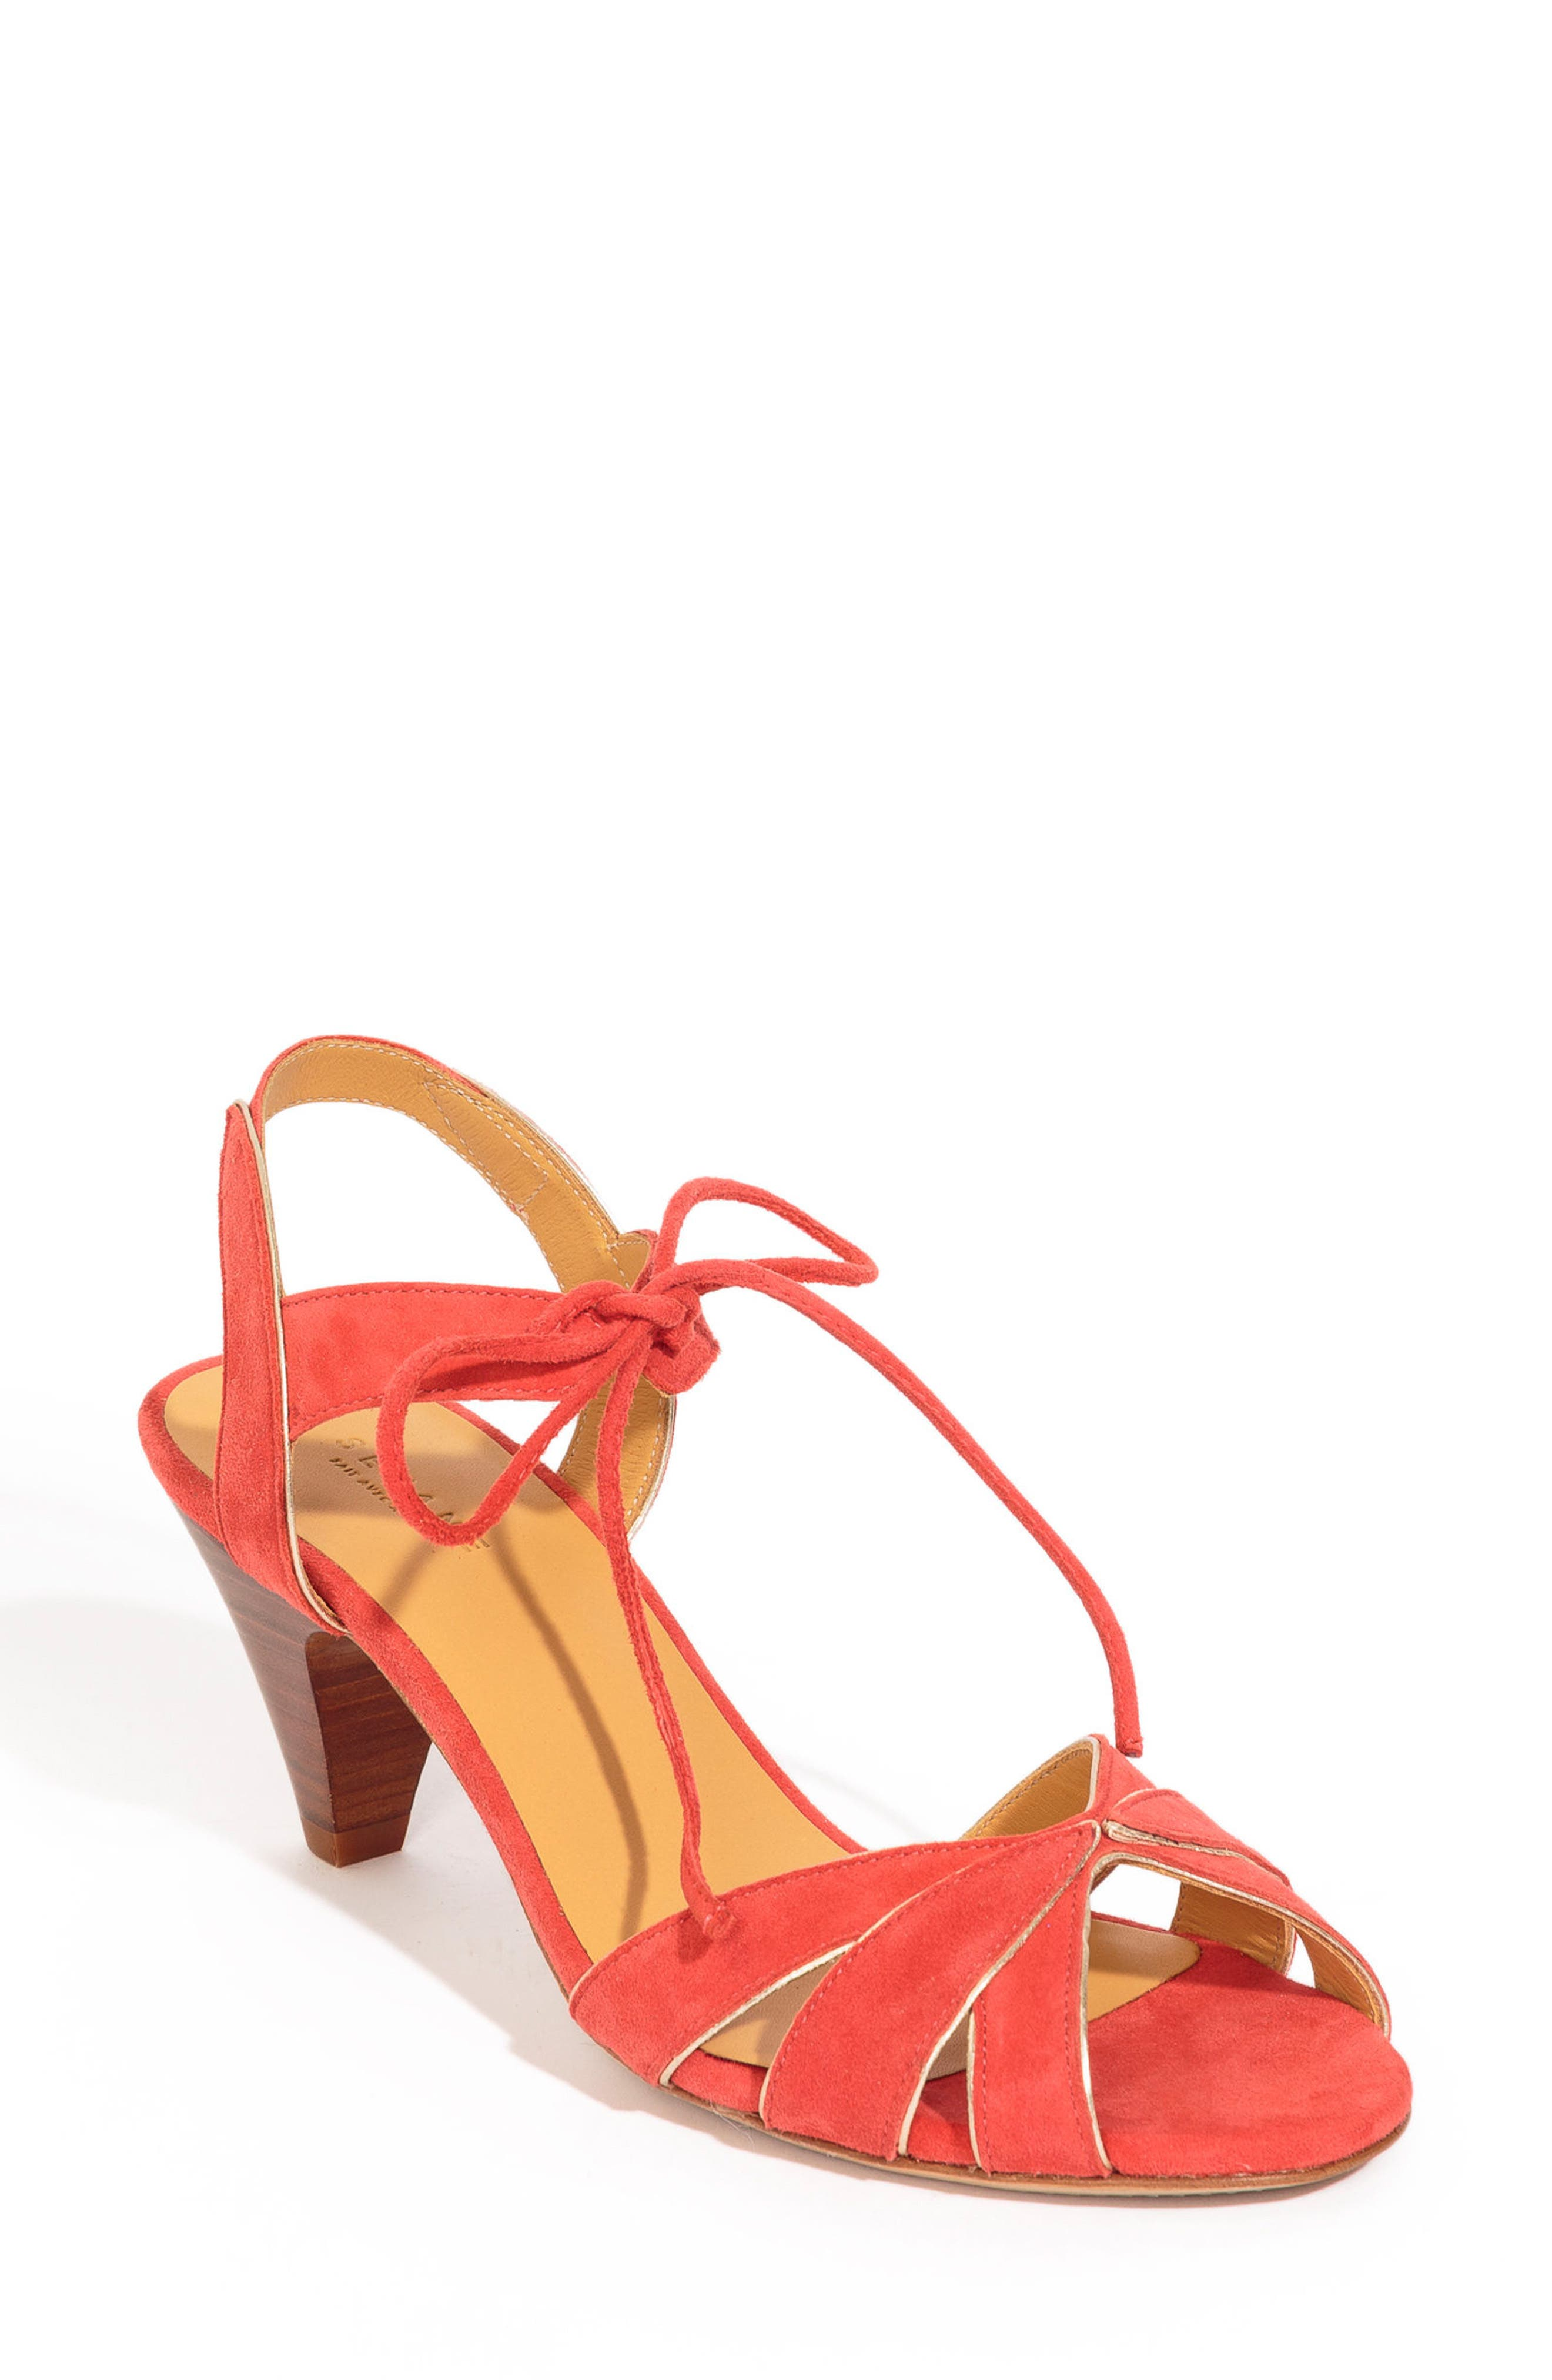 Victoire Ankle Tie Sandal,                             Main thumbnail 1, color,                             CORAL RED SUEDE